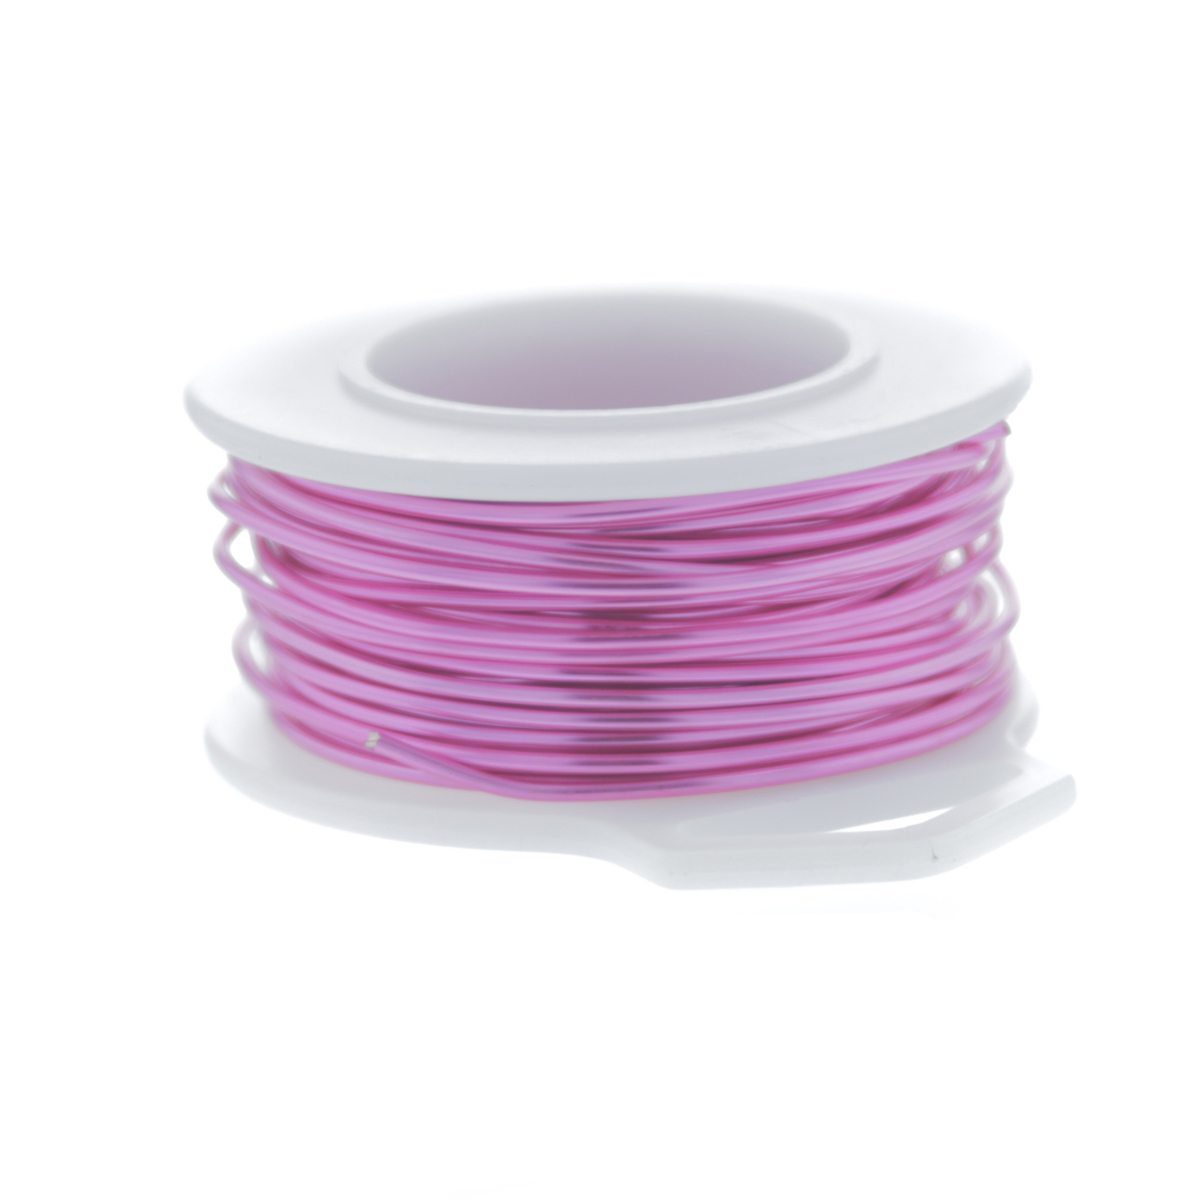 26 Gauge Round Silver Plated Hot Pink Copper Craft Wire - 45 ft ...